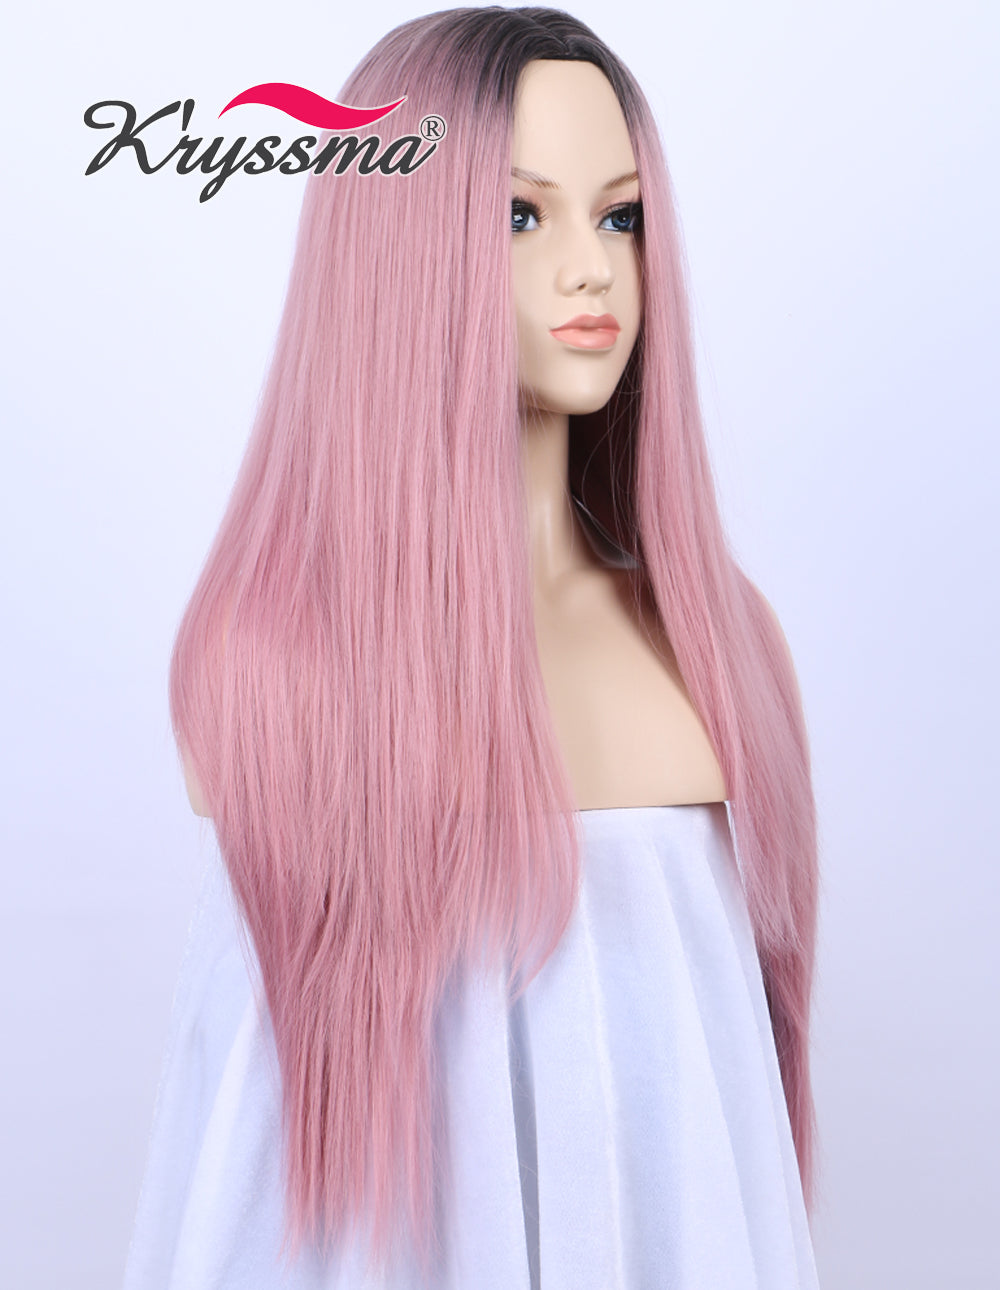 K ryssma Ombre Sweet Baby Pink Dark Roots Glueless Synthetic Wigs For Women  Long Straight ... 7b2322298b